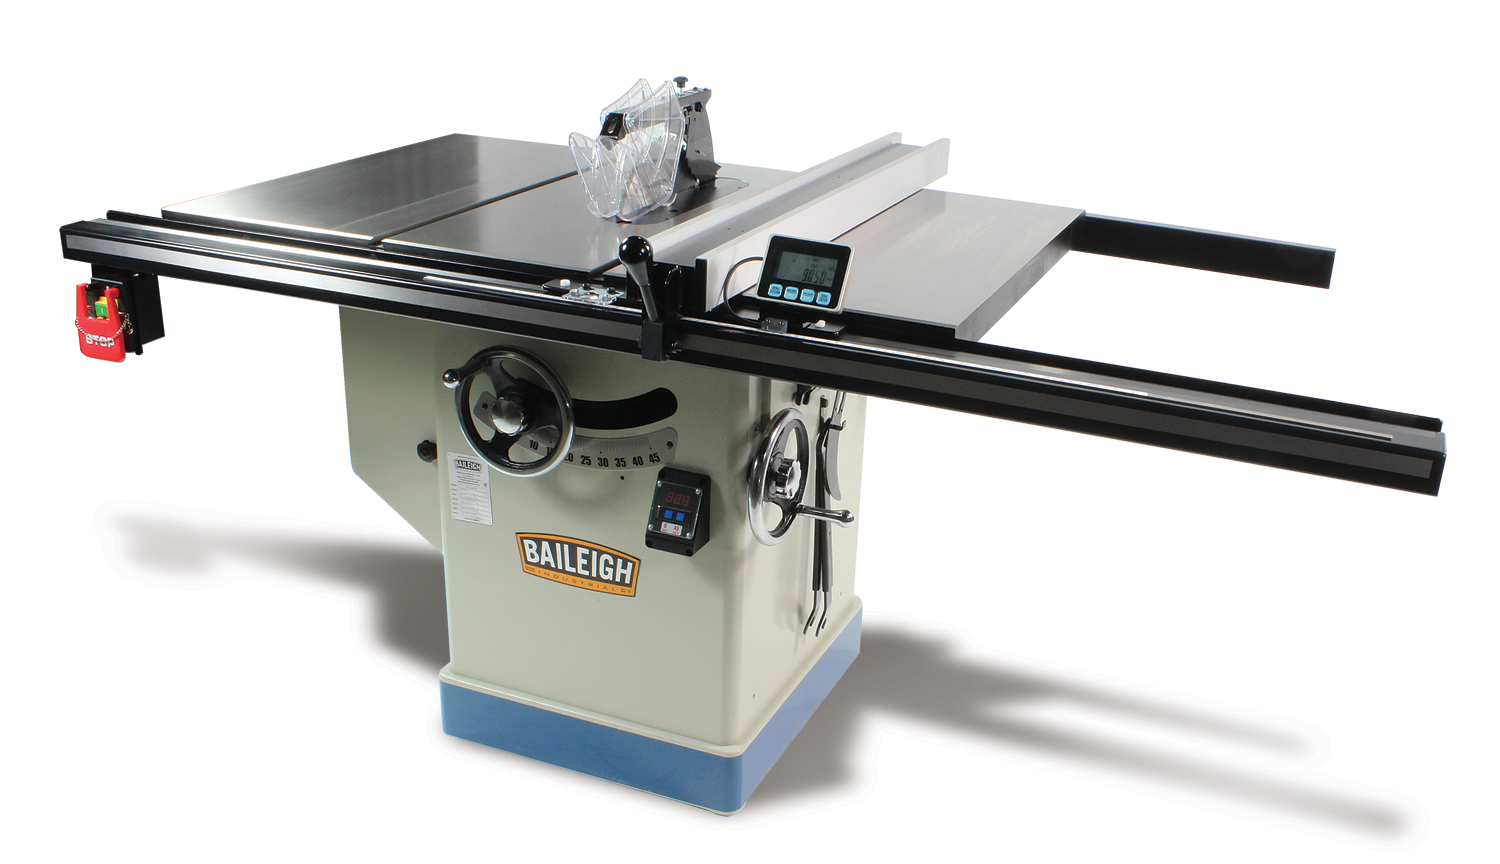 Table Saw Colors | Diy table saw, Cabinet table saw, Table saw